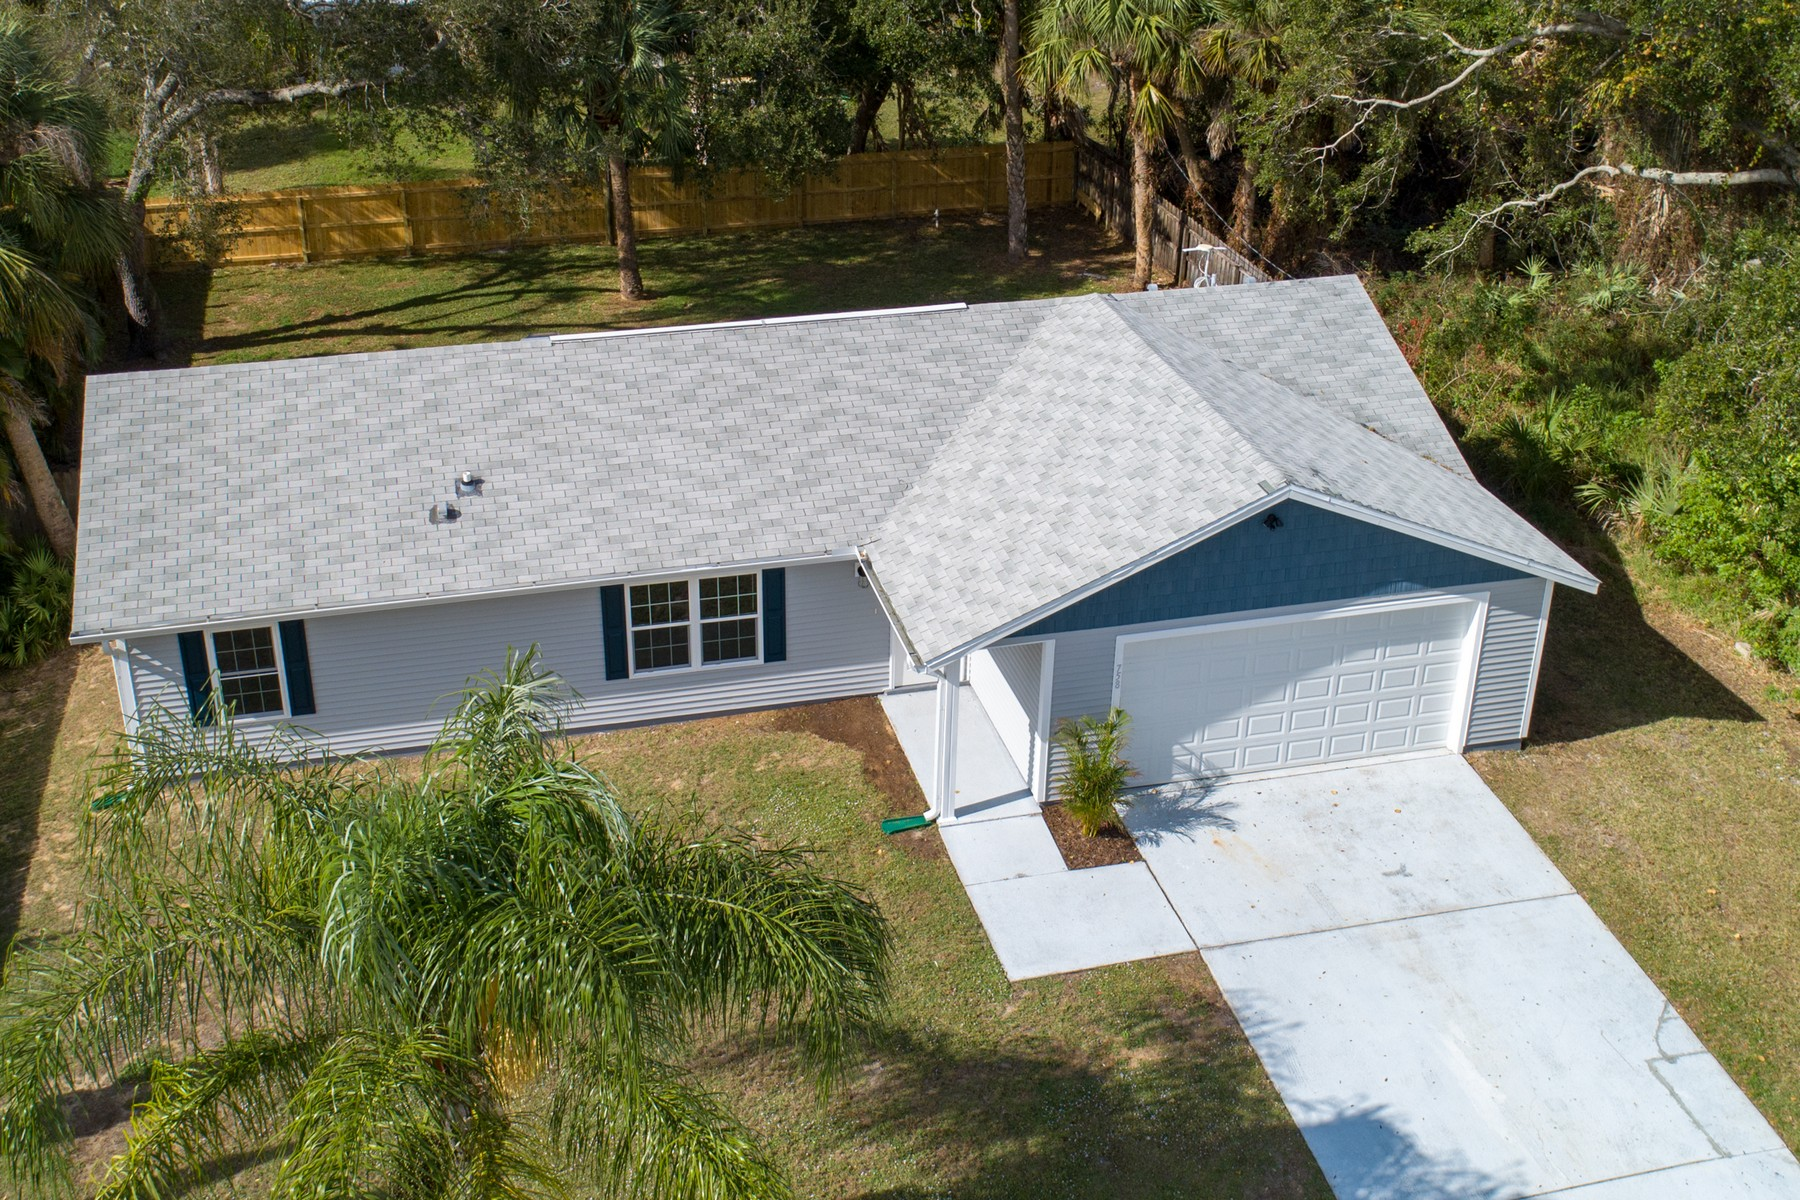 Single Family Home for Sale at Craftsman Home Remodeled to Perfection! 758 Barker St Sebastian, Florida 32958 United States